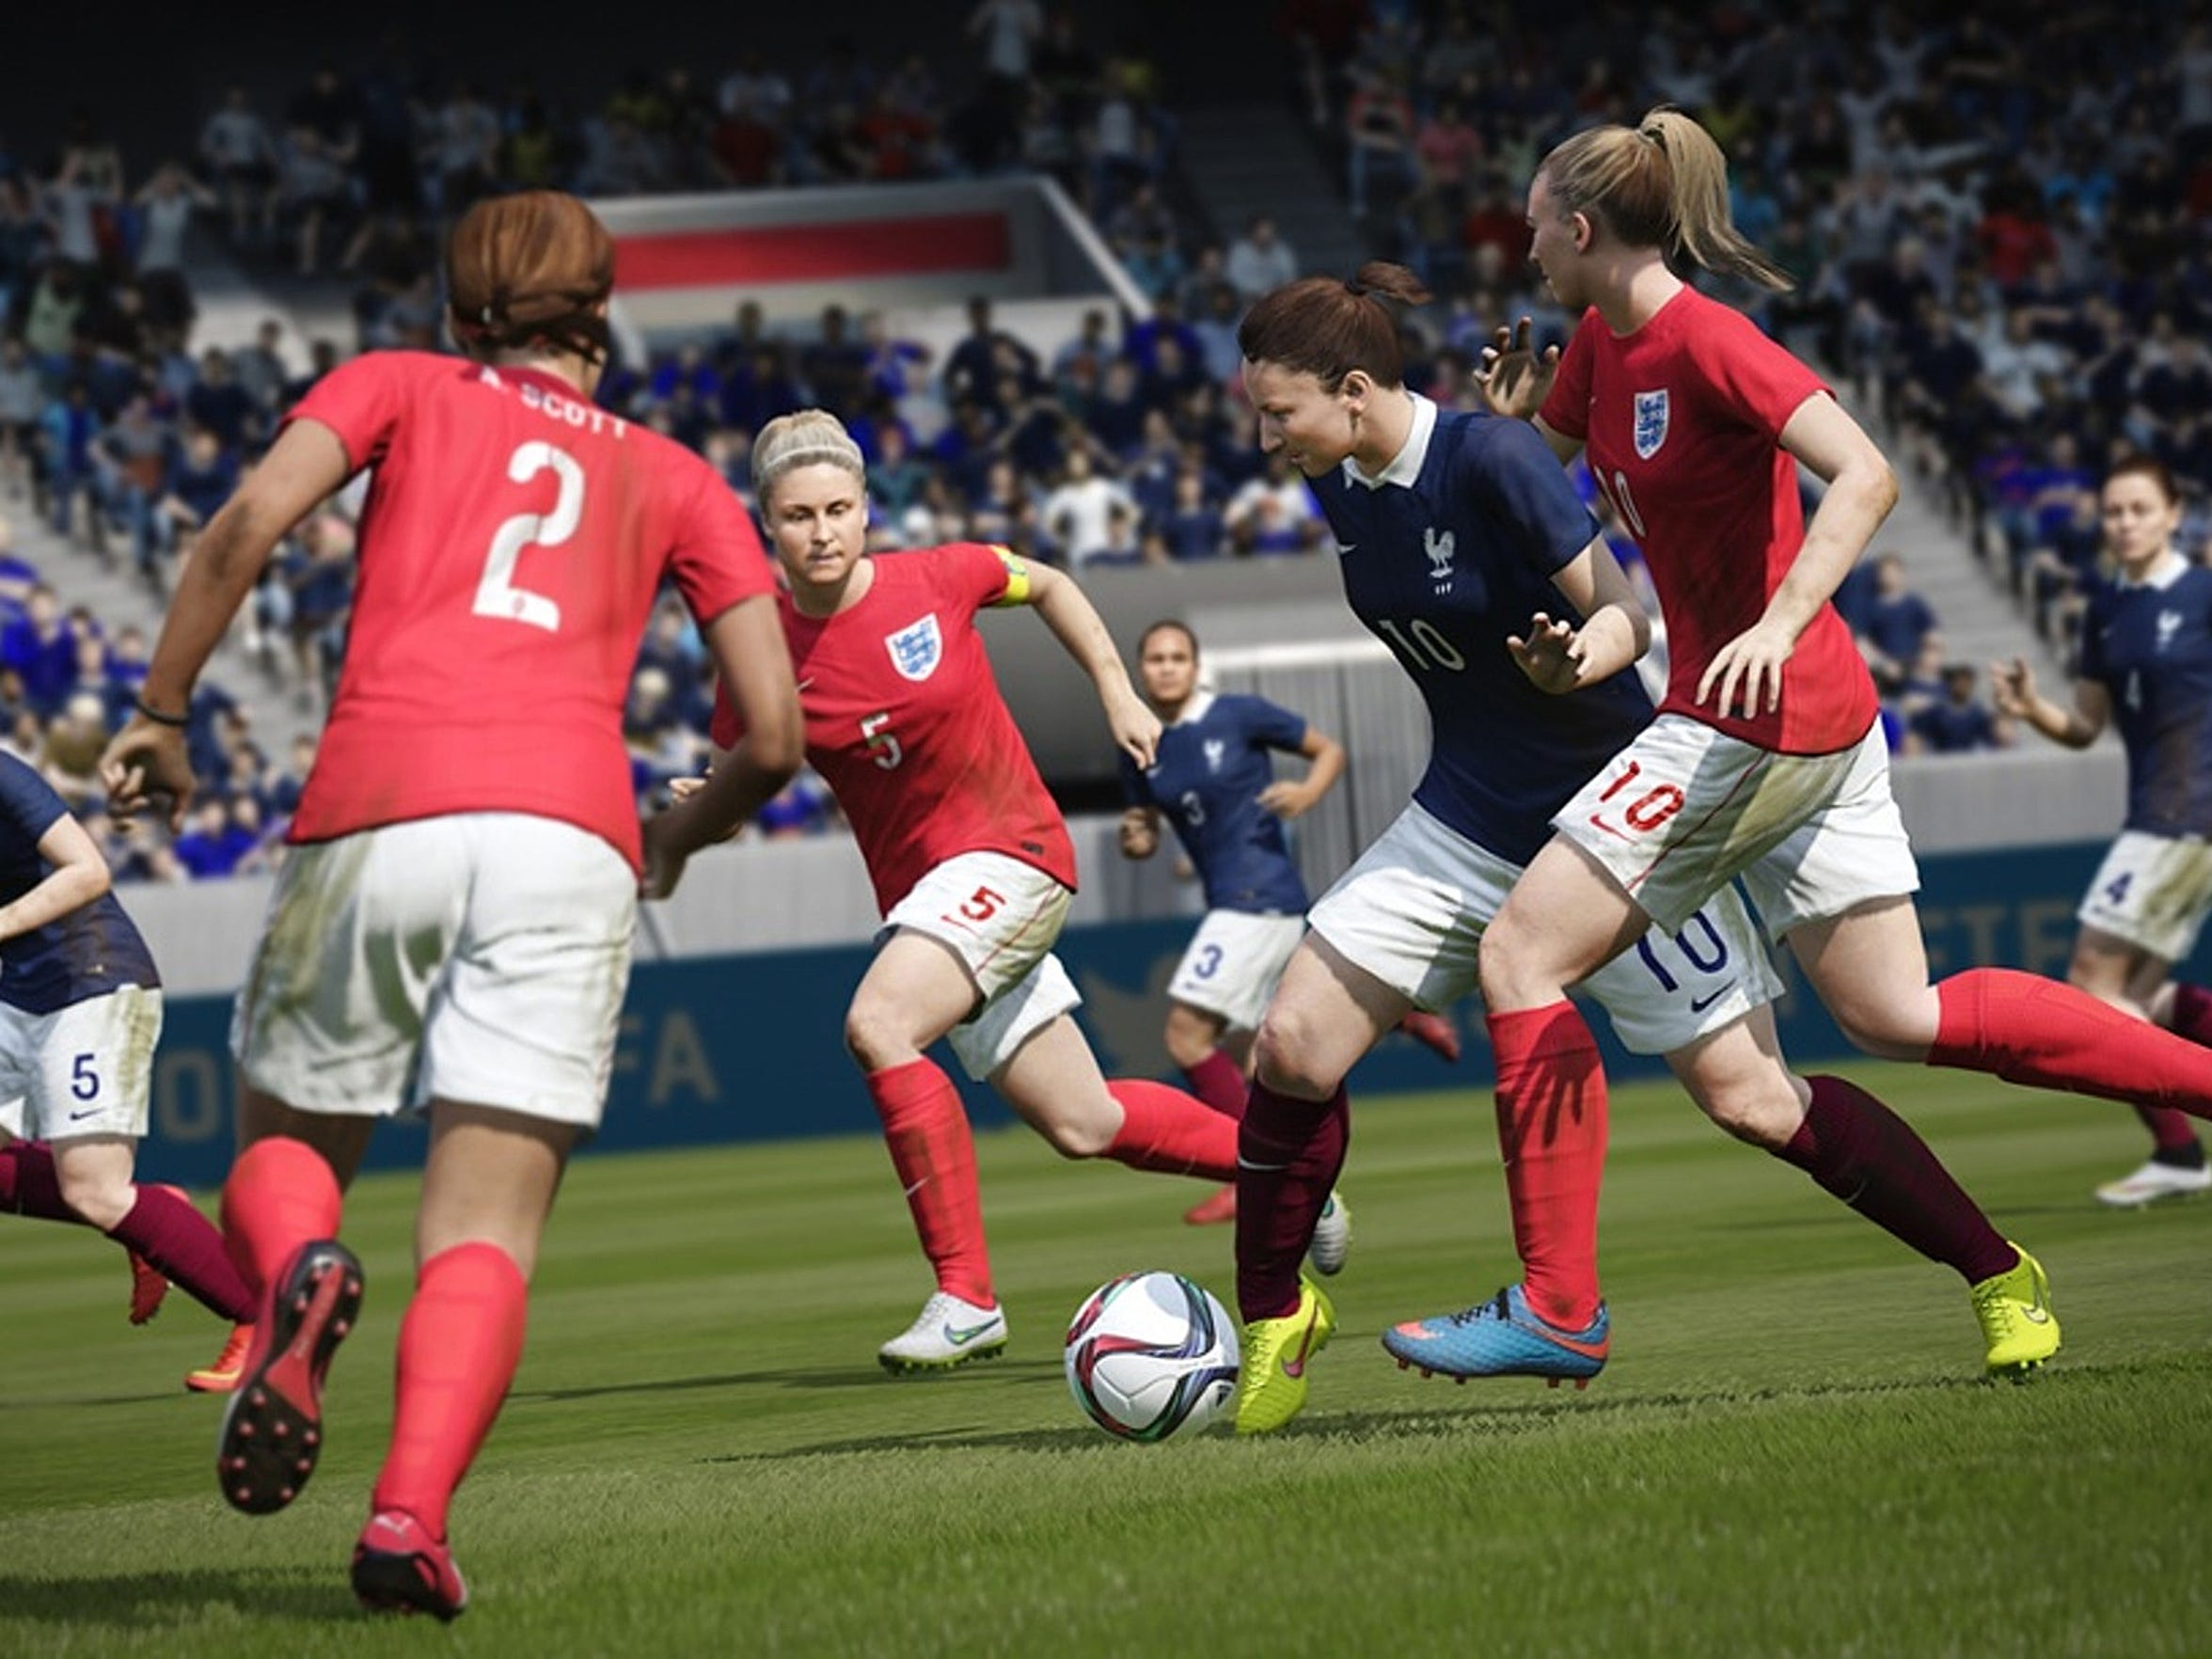 FIFA 16 adds 12 international women's teams to the mix, with gameplay having its own unique feel compared to the men's teams.